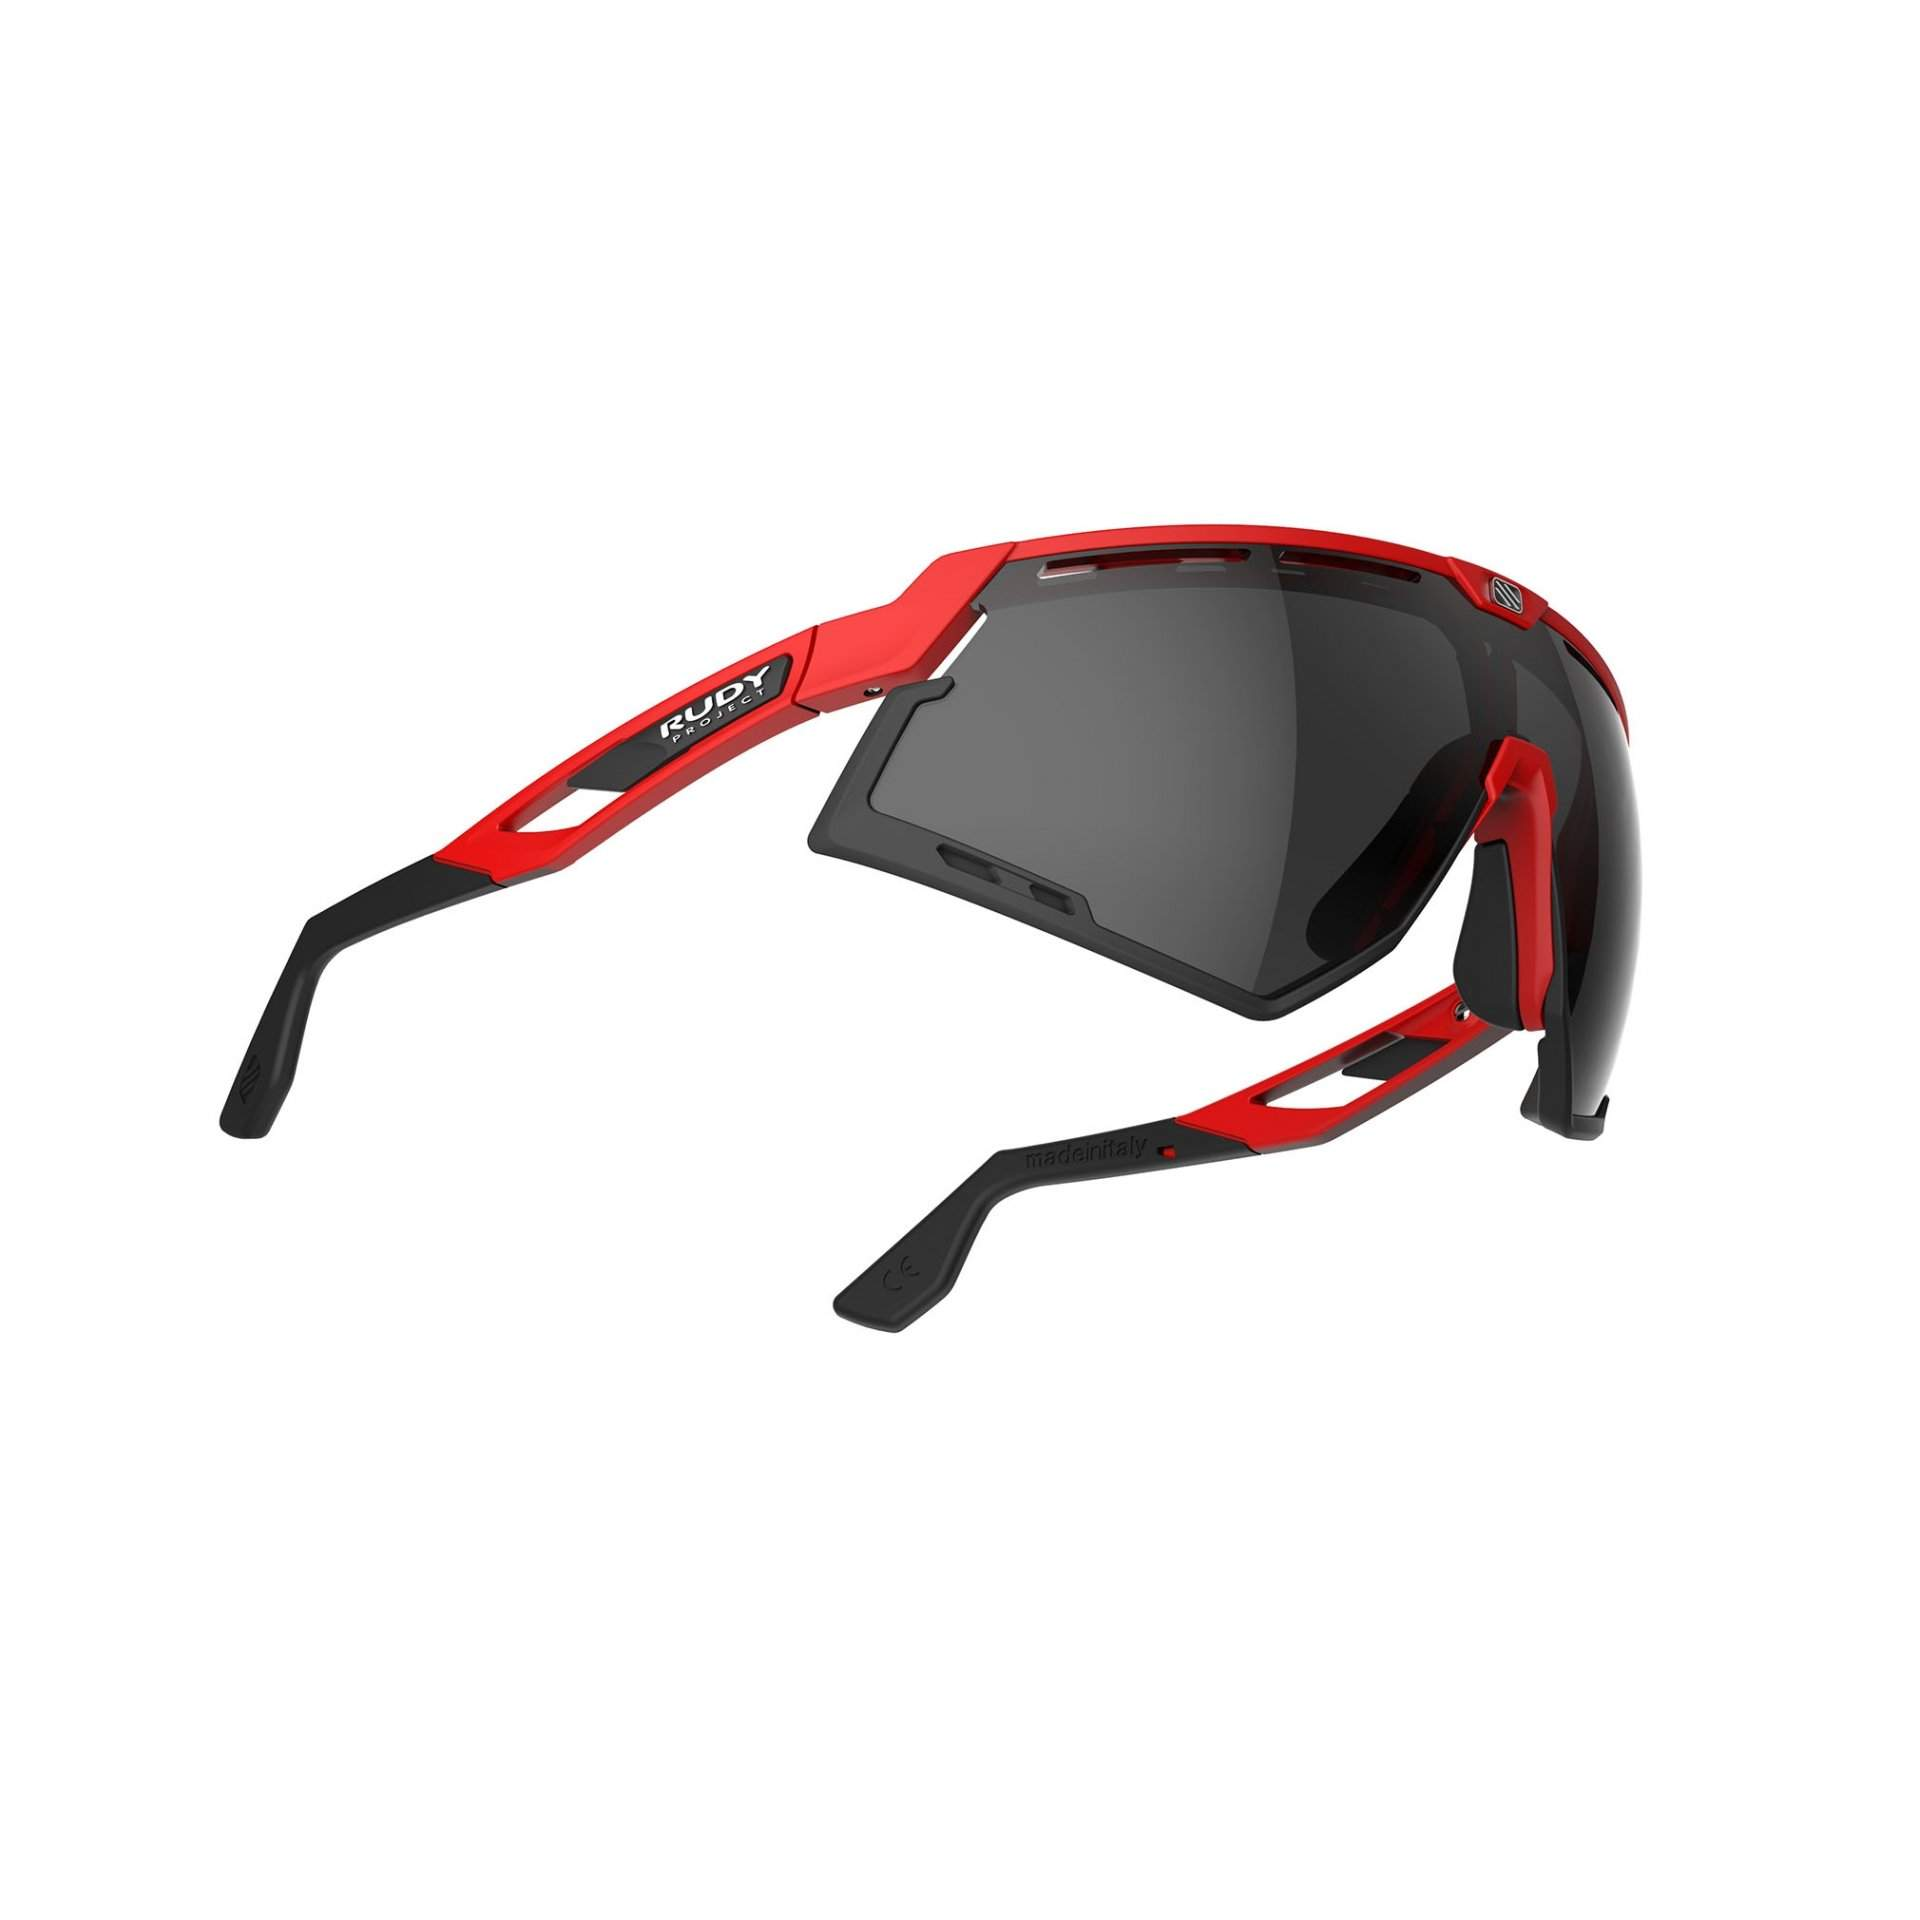 OKULARY RUDY PROJECT DEFENDER FIRE RED MATTE|SMOKE BLACK 3